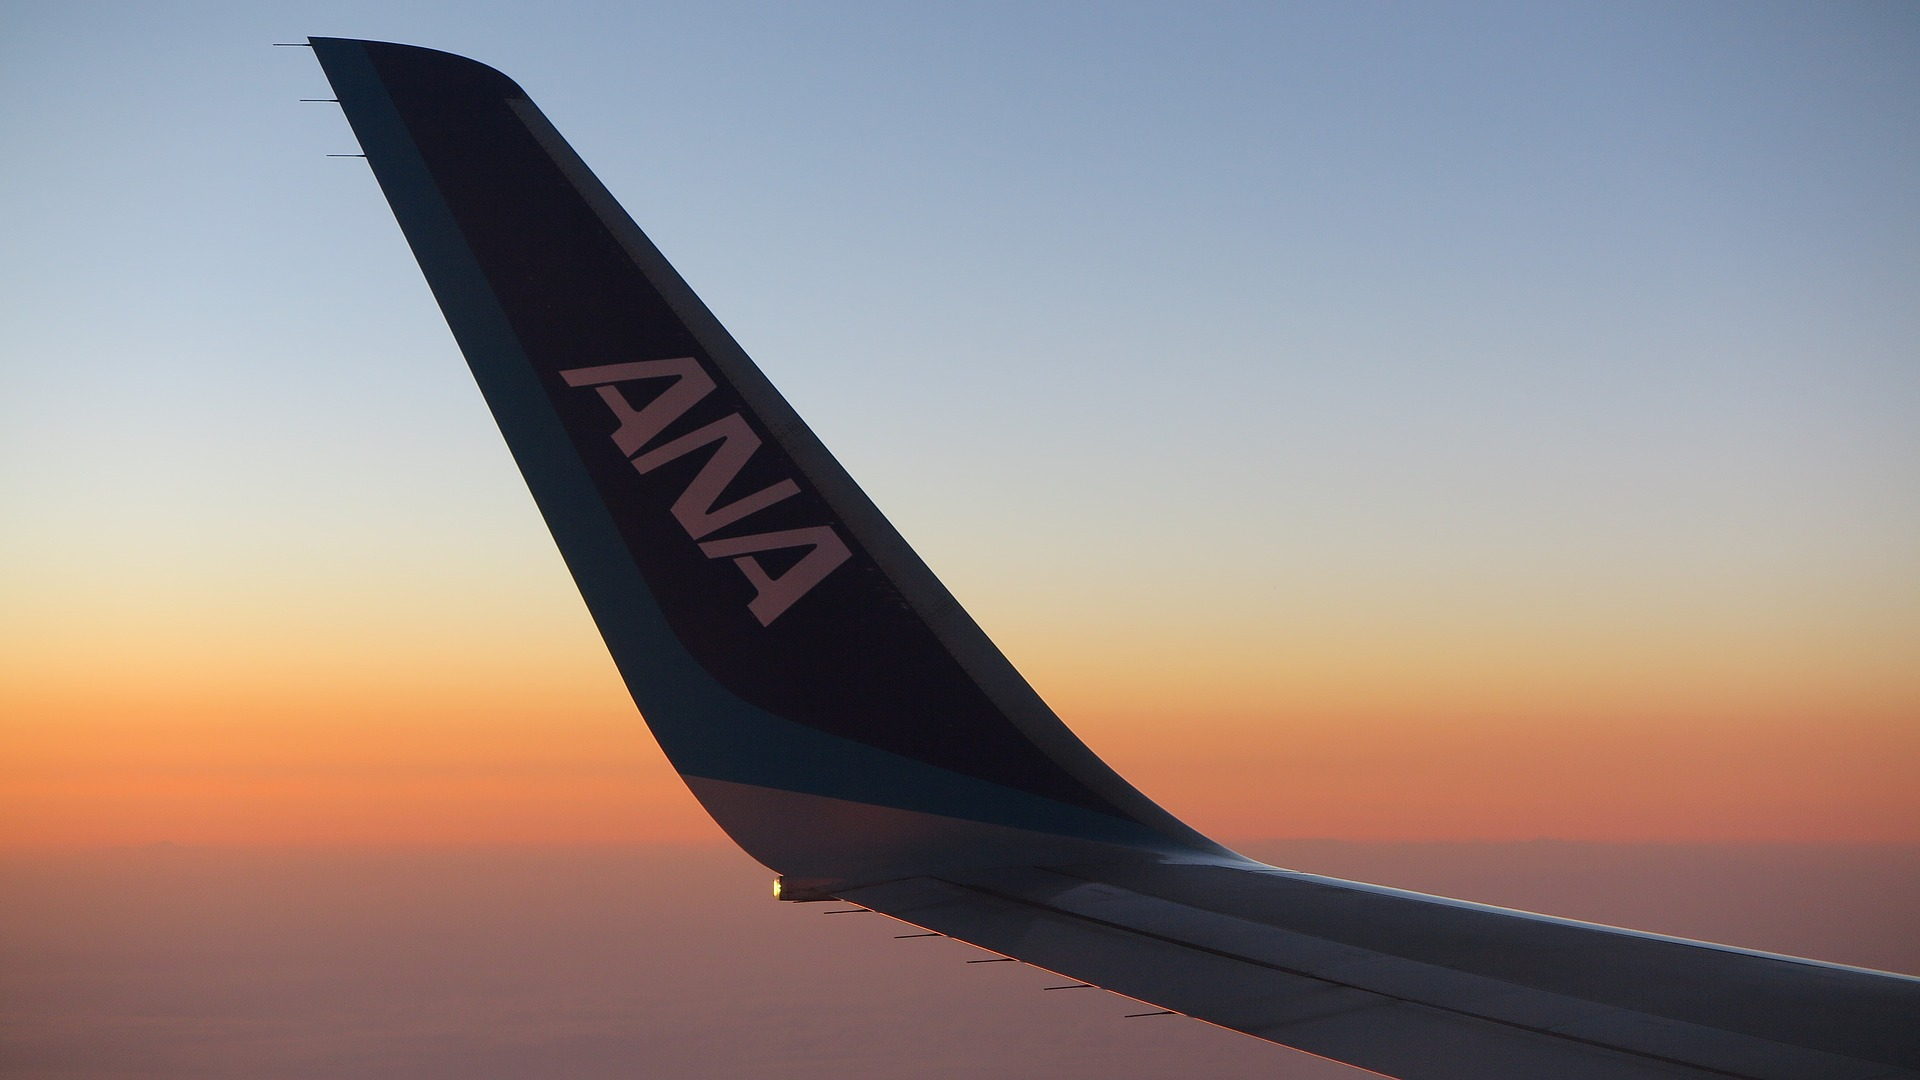 Wing tip of an ANA airplane in the sky